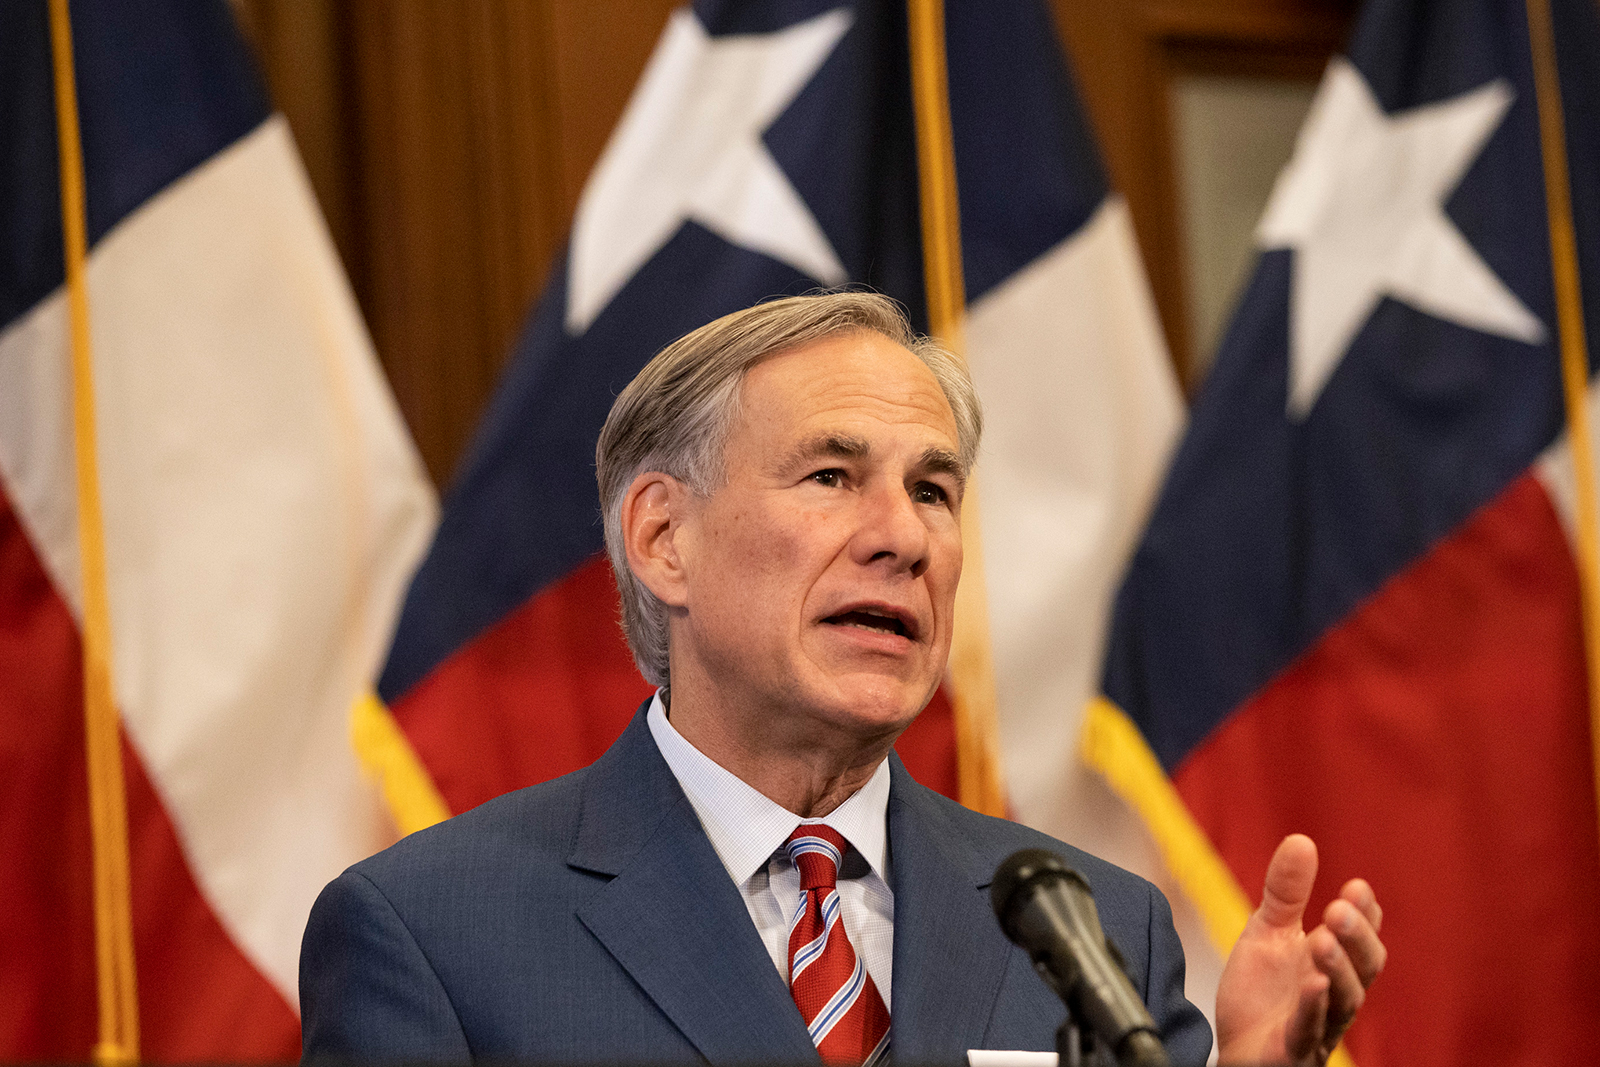 Texas Gov. Greg Abbott speaks at a press conference at the Texas State Capitol in Austin on May 18.